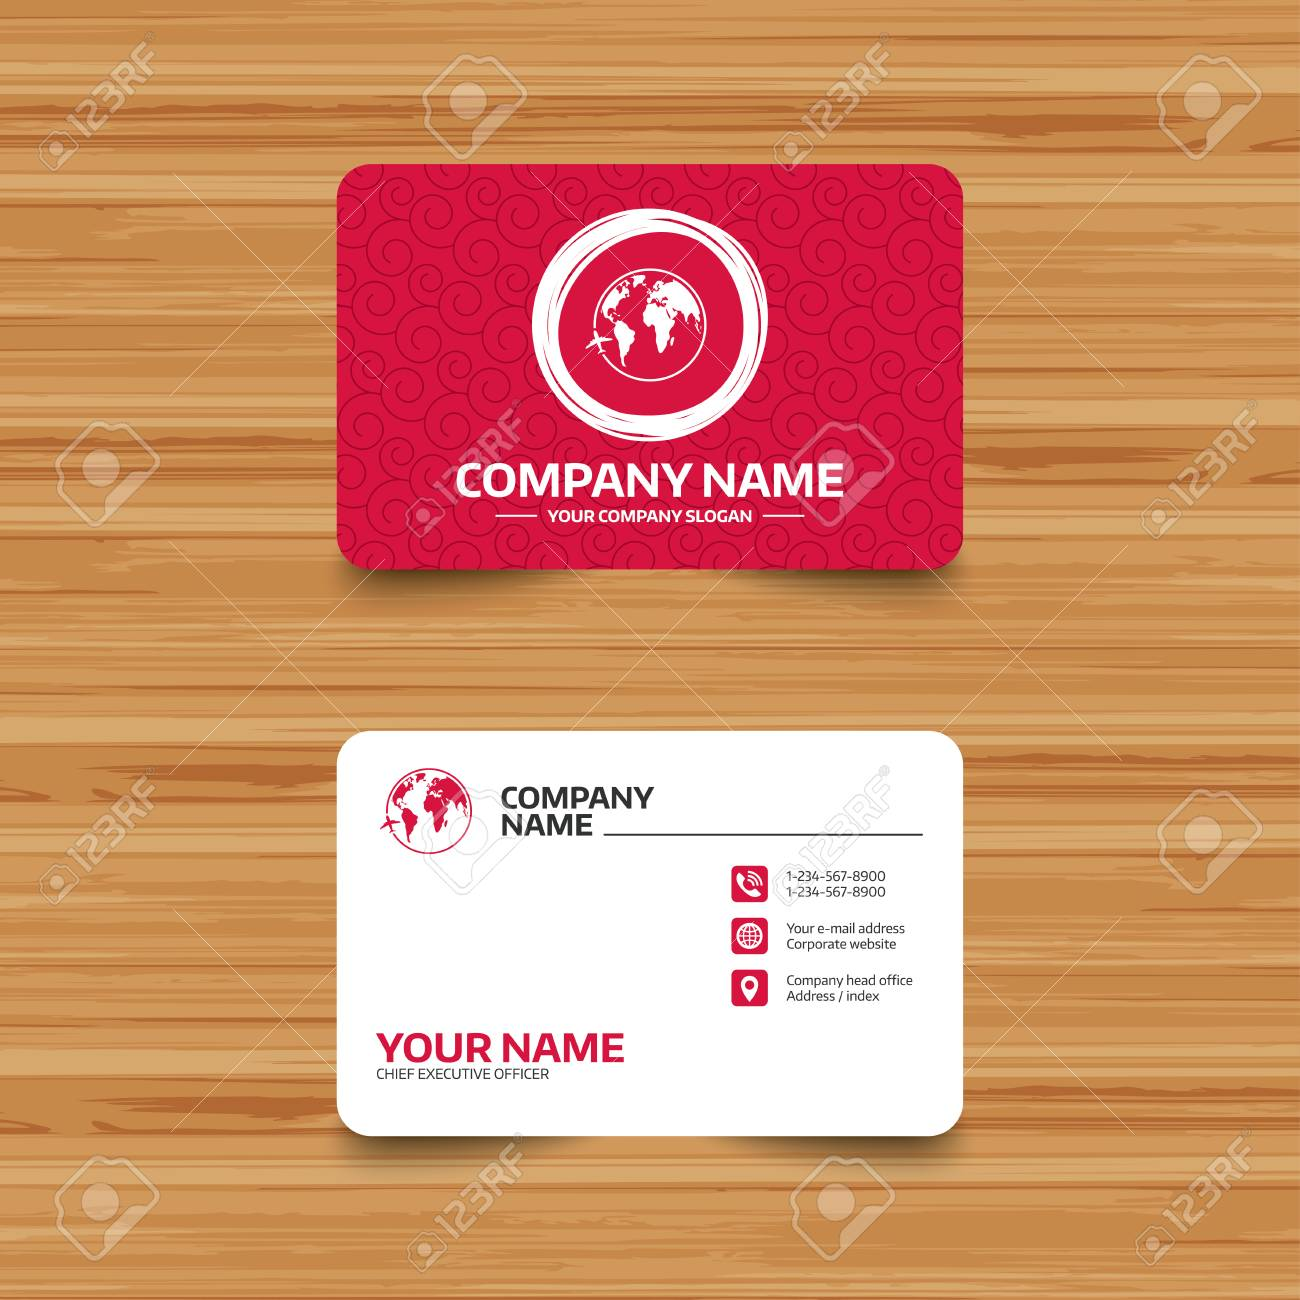 Business card template with texture airplane sign icon travel business card template with texture airplane sign icon travel trip round the world symbol accmission Image collections